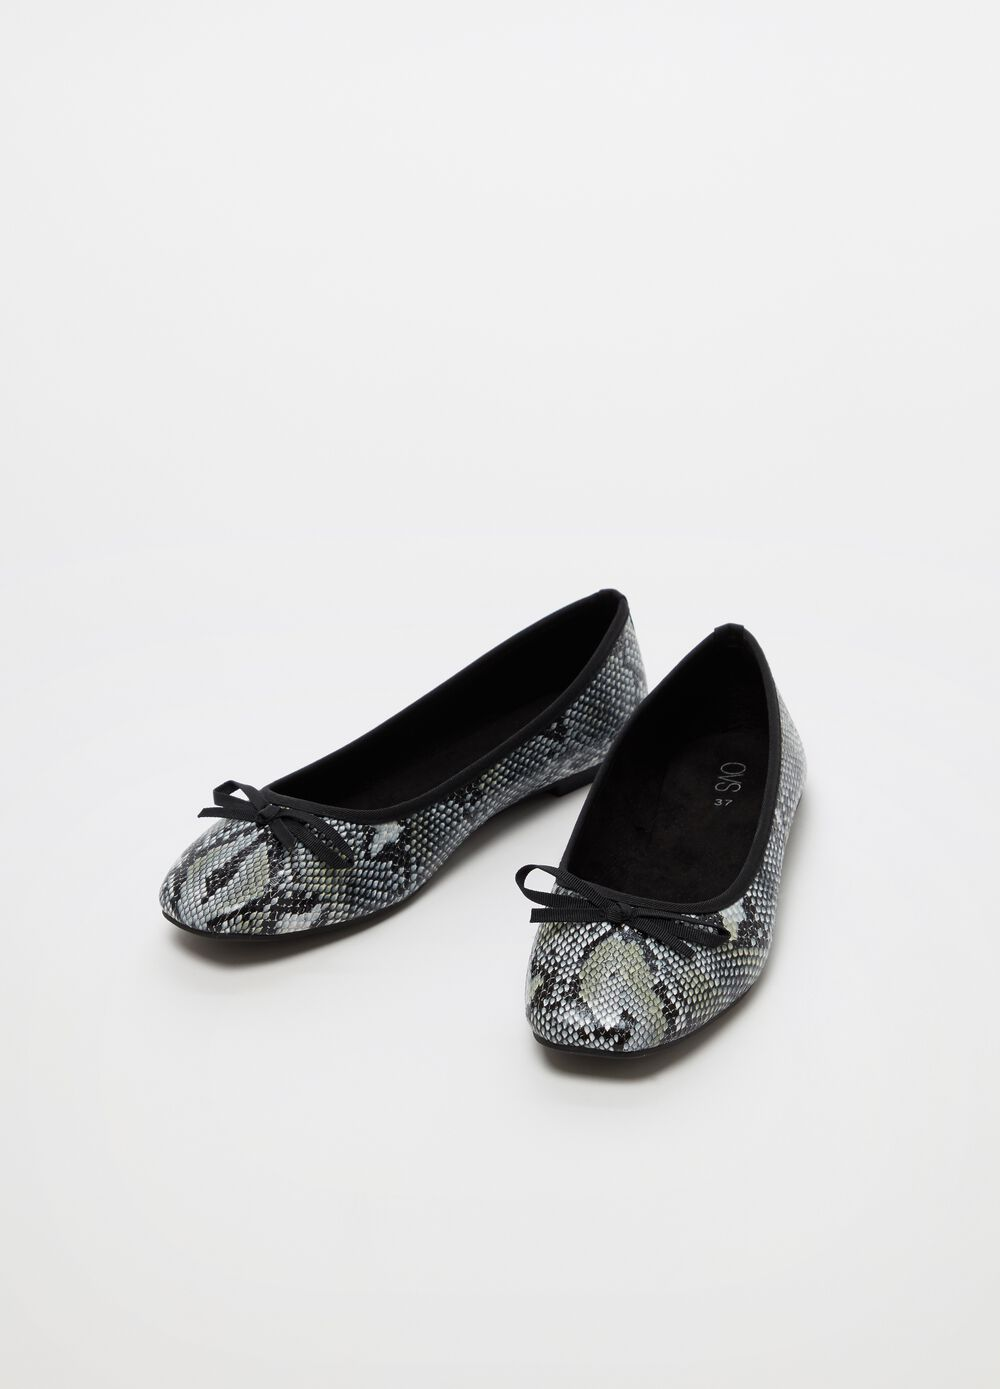 Ballerina flats with snakeskin print and flat heel